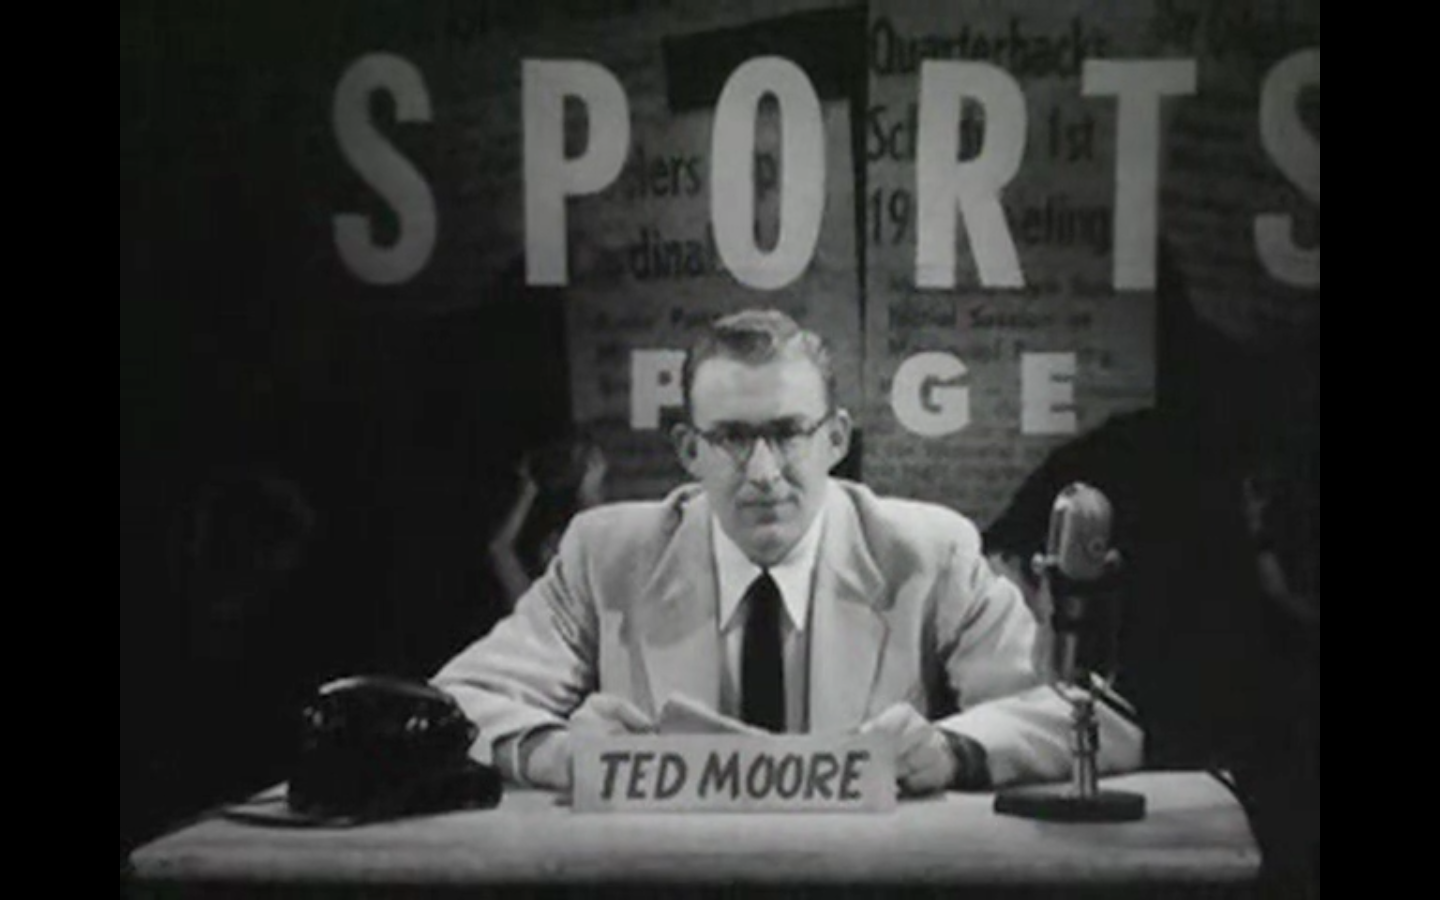 RIP TED MOORE